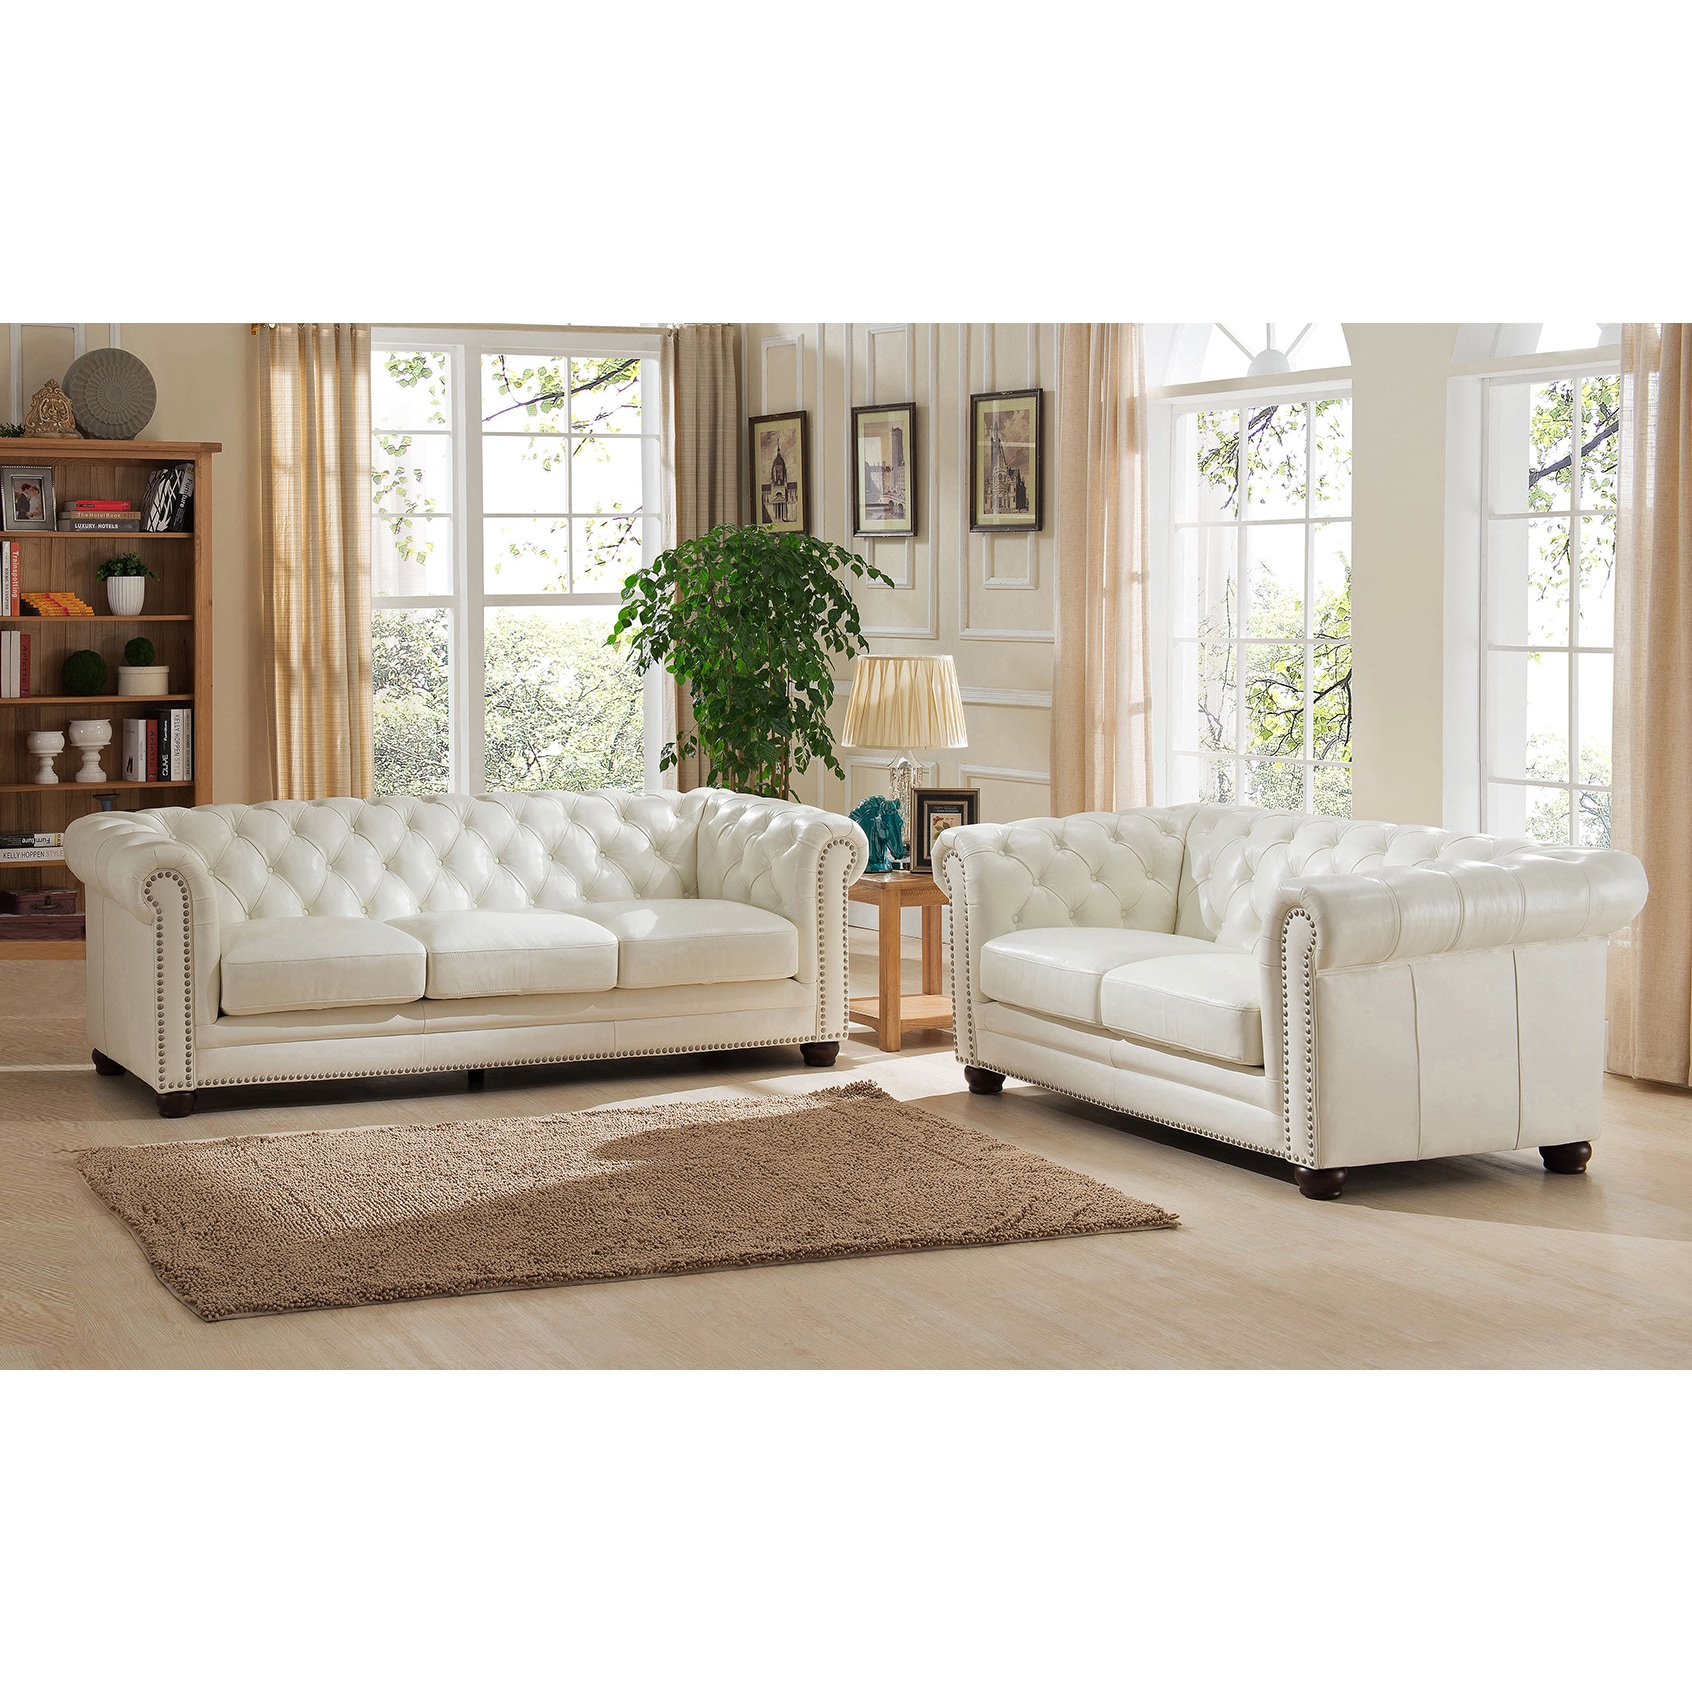 Barlow White Leather Sofa And Loveseat Set Leather Chesterfield Sofa And Loveseat Set Sofa Ideas